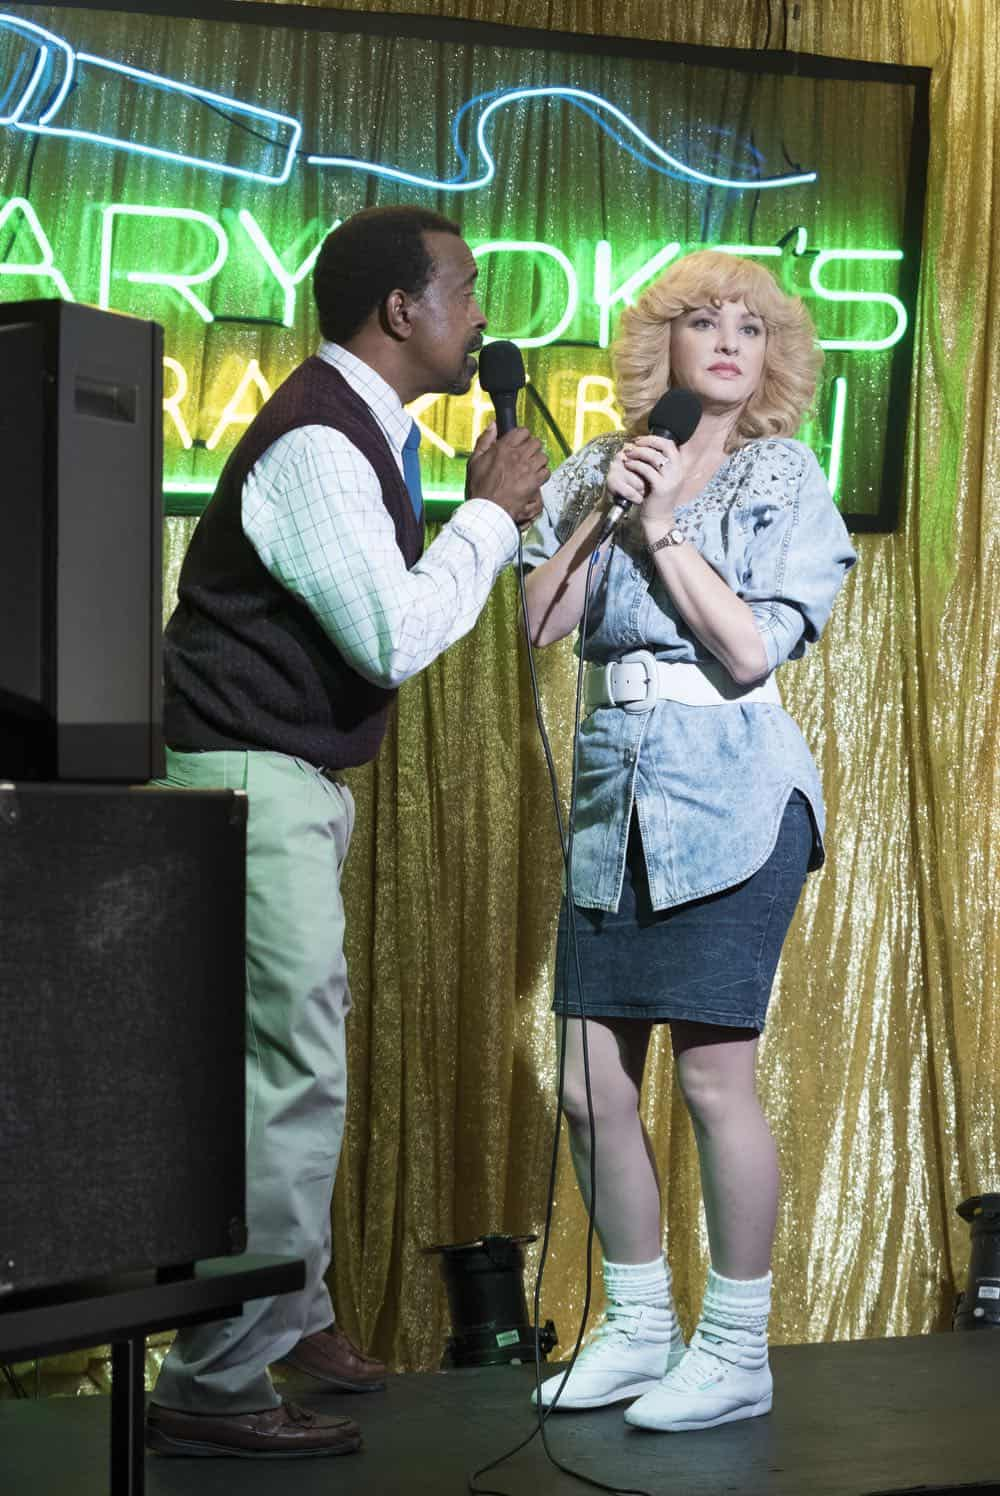 """THE GOLDBERGS - """"RAD!"""" - Erica thinks all of her singing dreams are going to come true when she lands a job at the new karaoke bar in town. But when she's tasked with bringing in more customers, will Erica regret turning to Beverly for help? Meanwhile, Murray tries to teach Barry and Lainey how to be financially responsible adults, on """"The Goldbergs,"""" WEDNESDAY, OCT. 10 (8:00-8:30 p.m. EDT), on The ABC Television Network. (ABC/Ron Tom) TIM MEADOWS, WENDI MCLENDON-COVEY"""